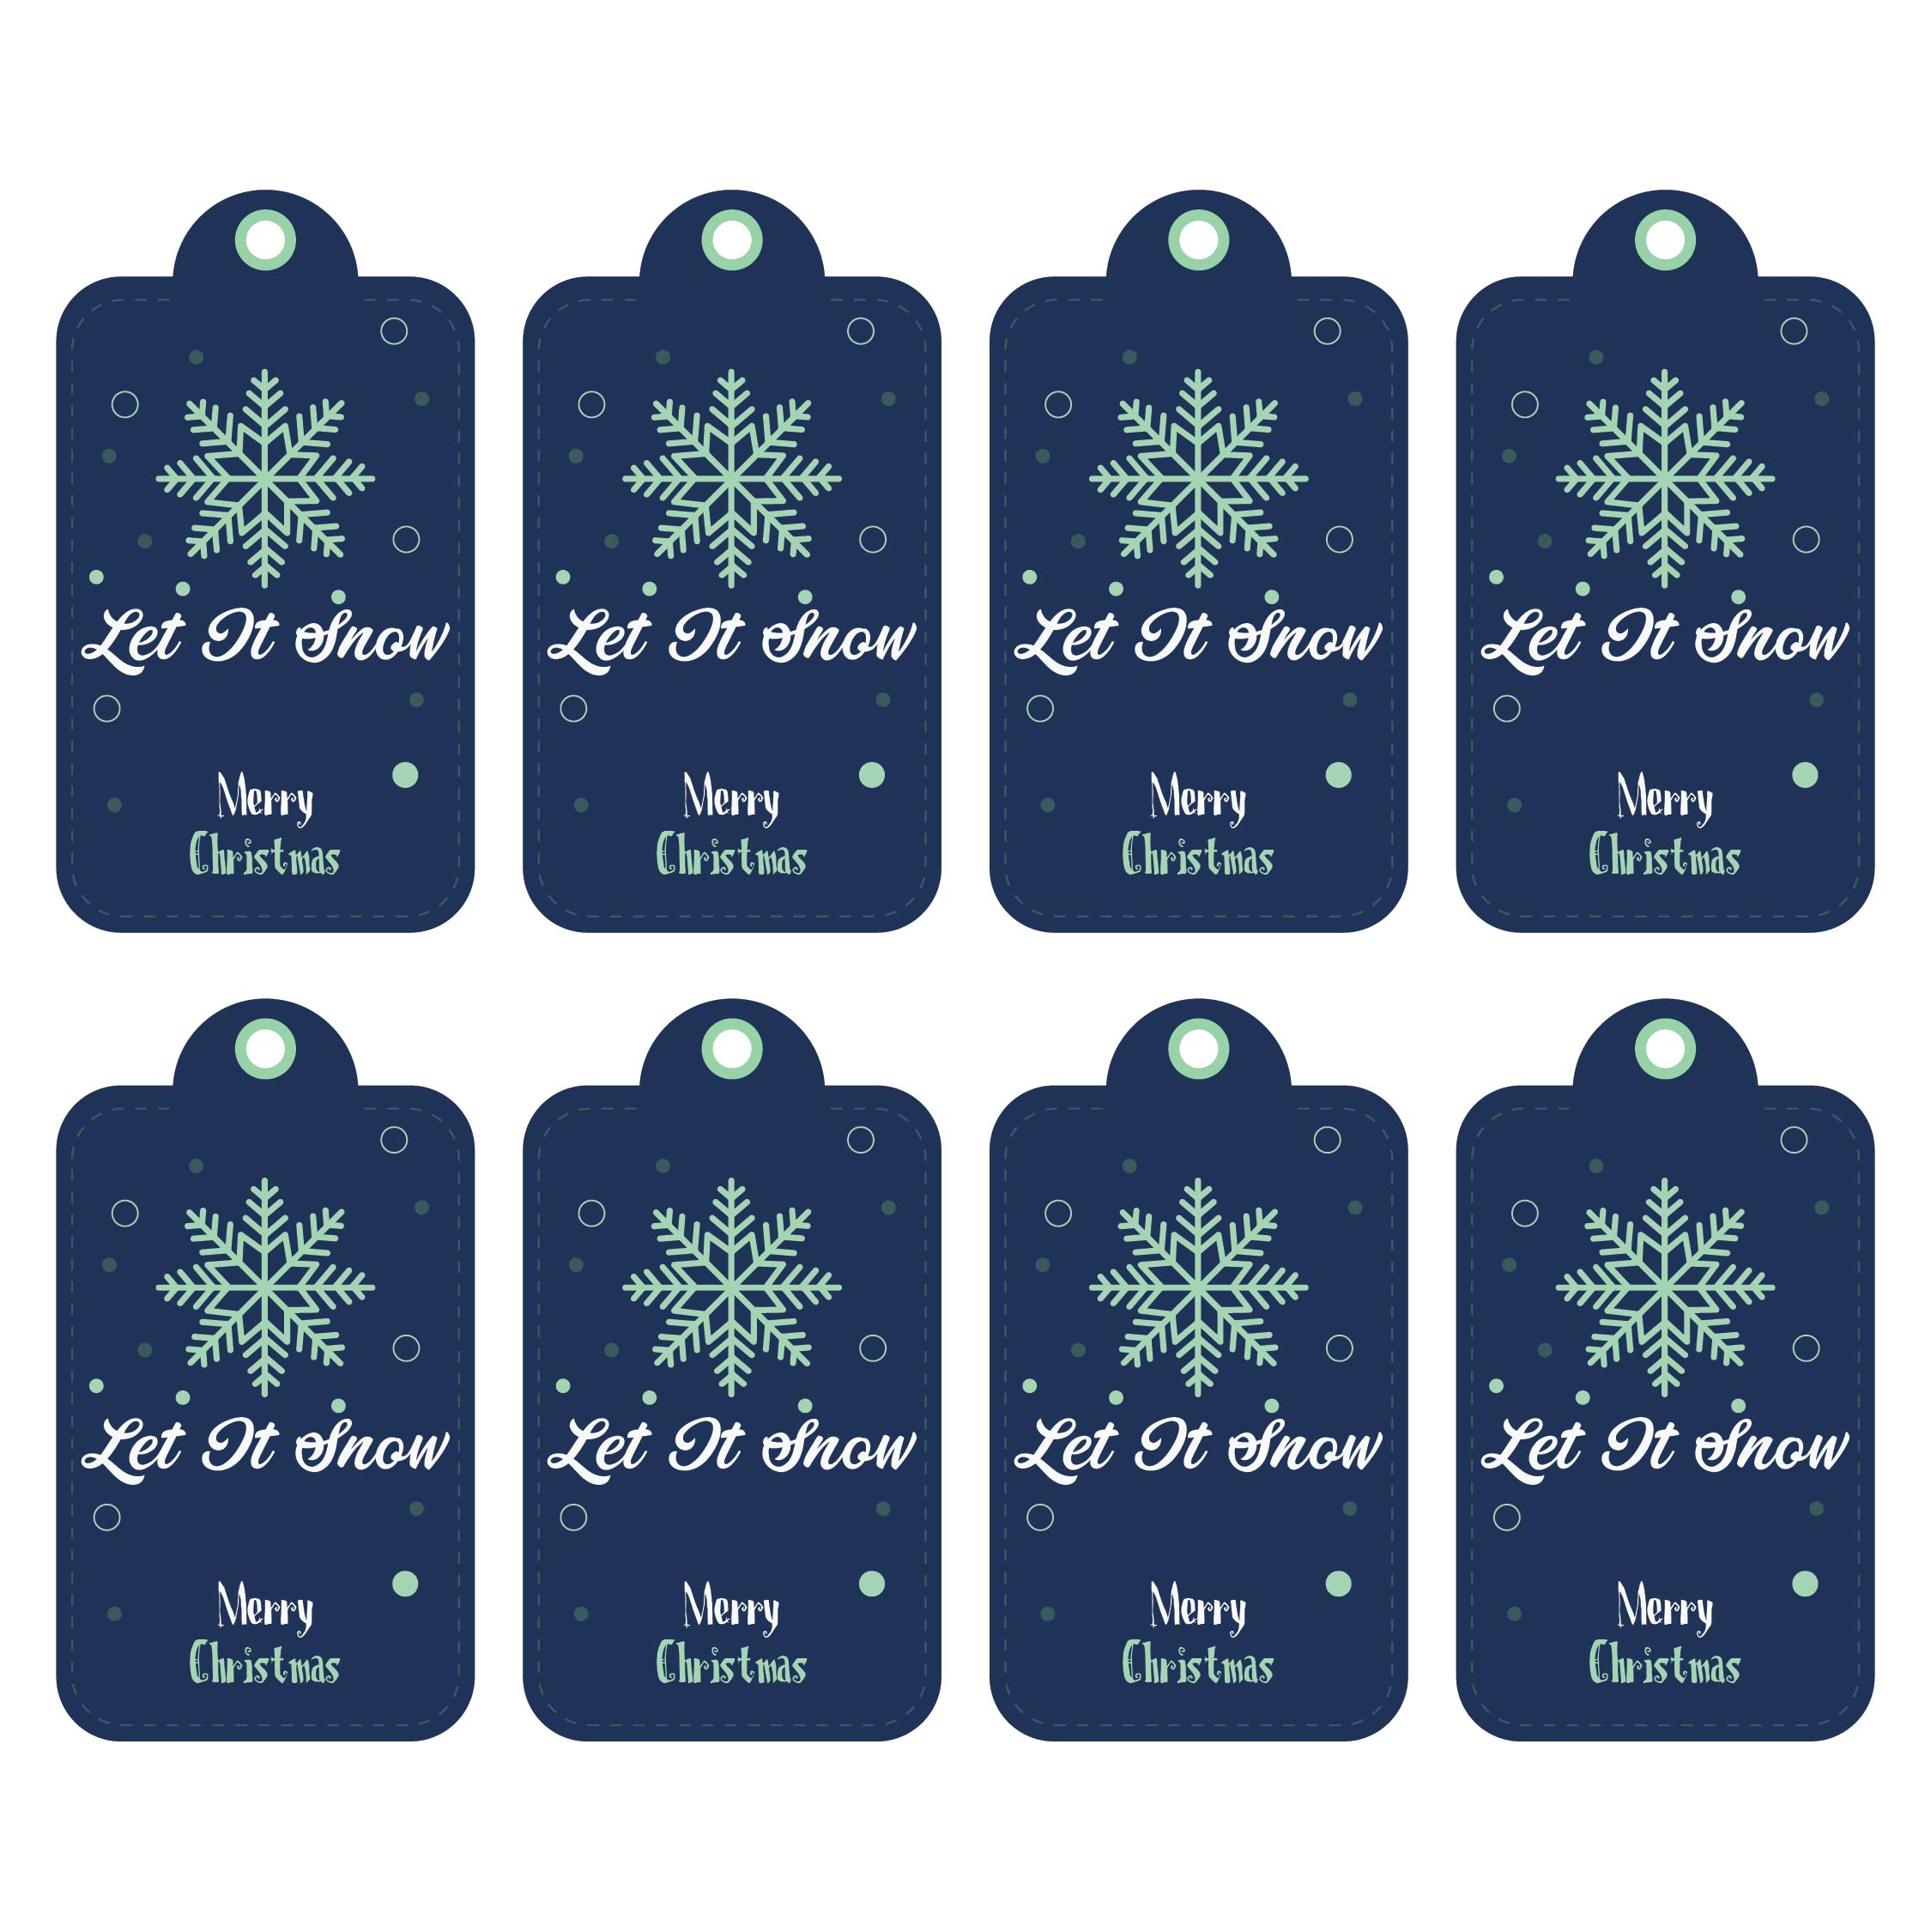 Printable Christmas Gift Tags Personalized